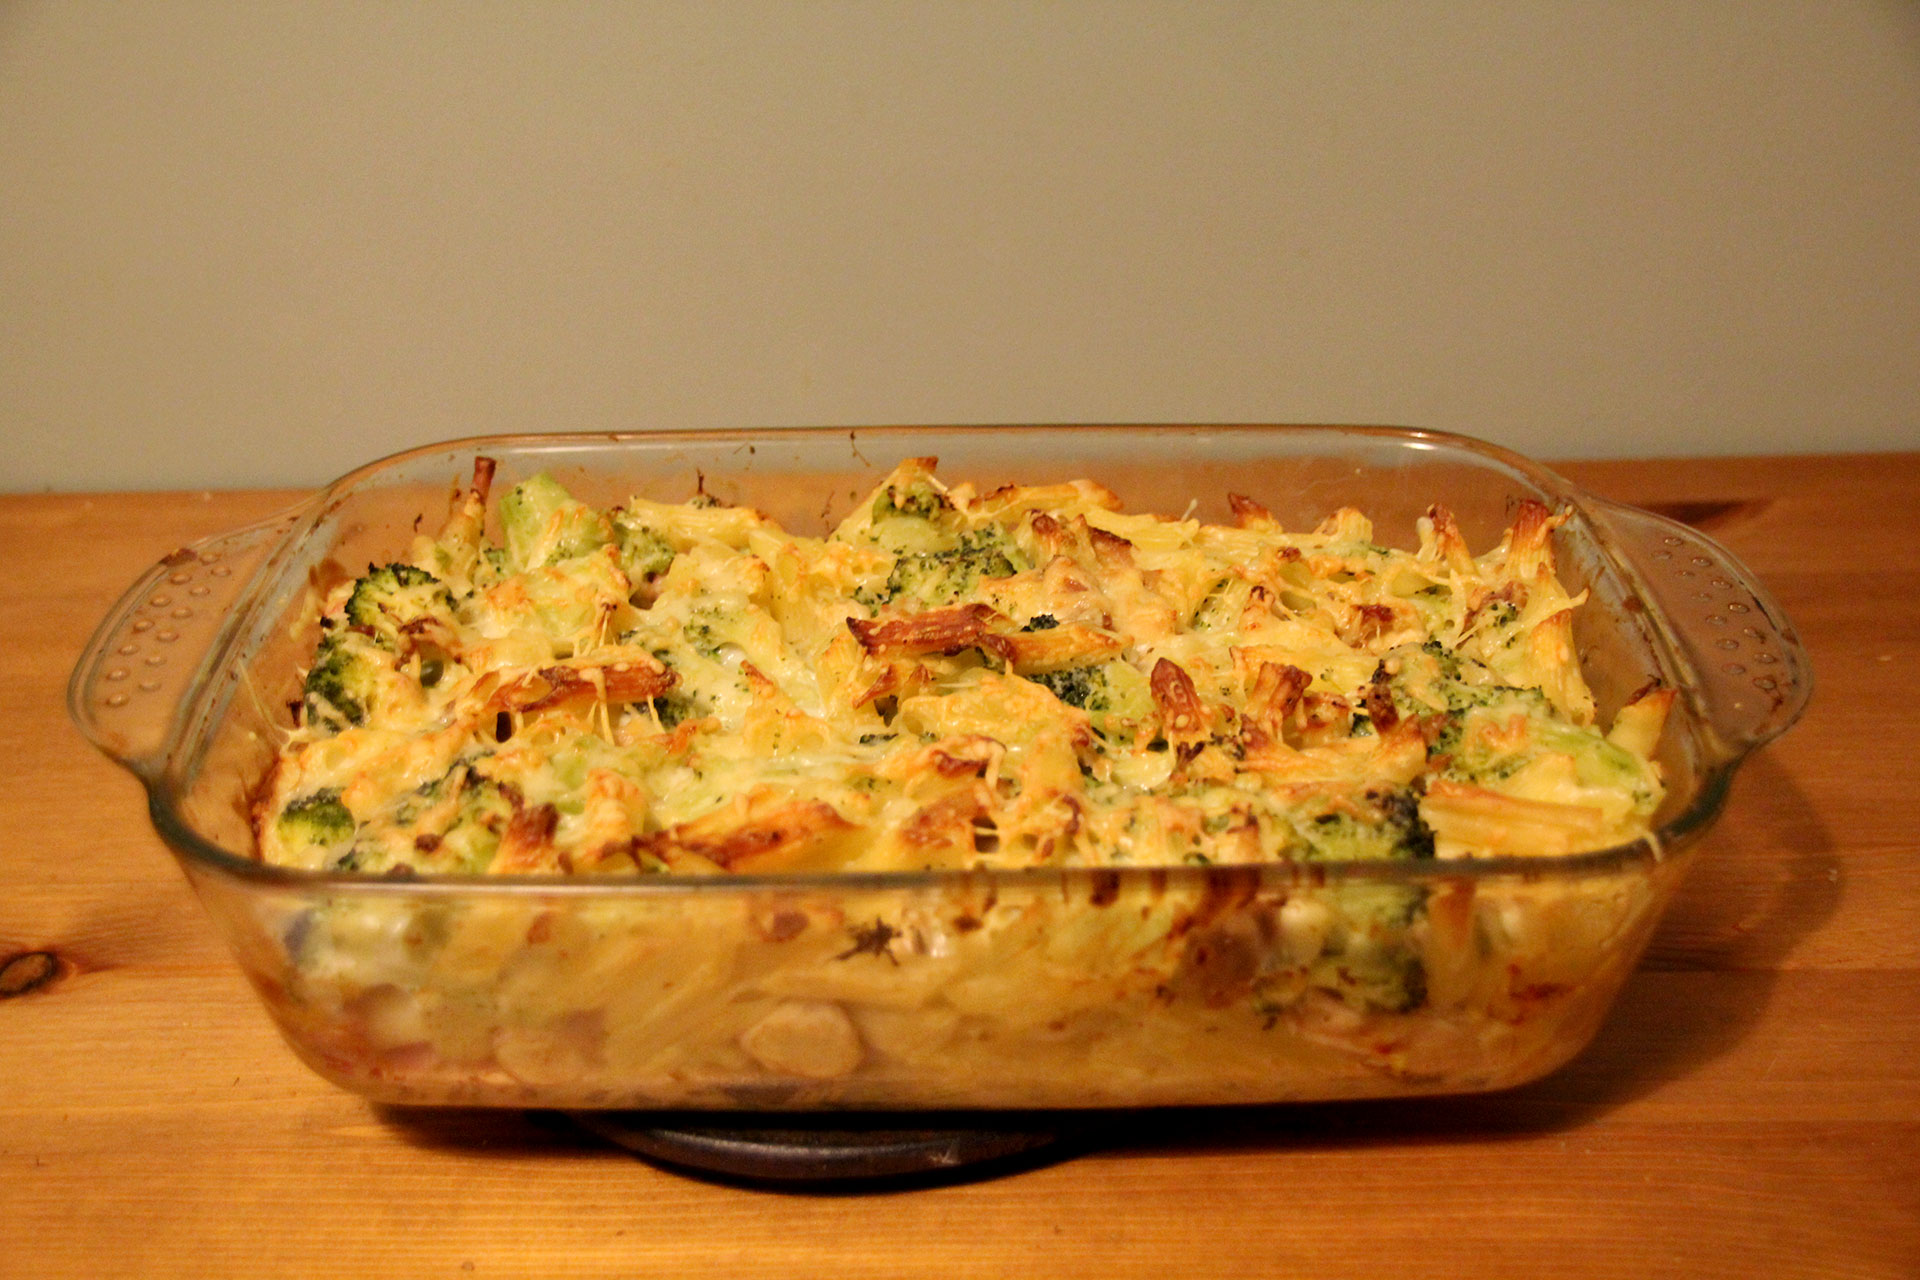 Cooked broccoli and chicken pasta bake